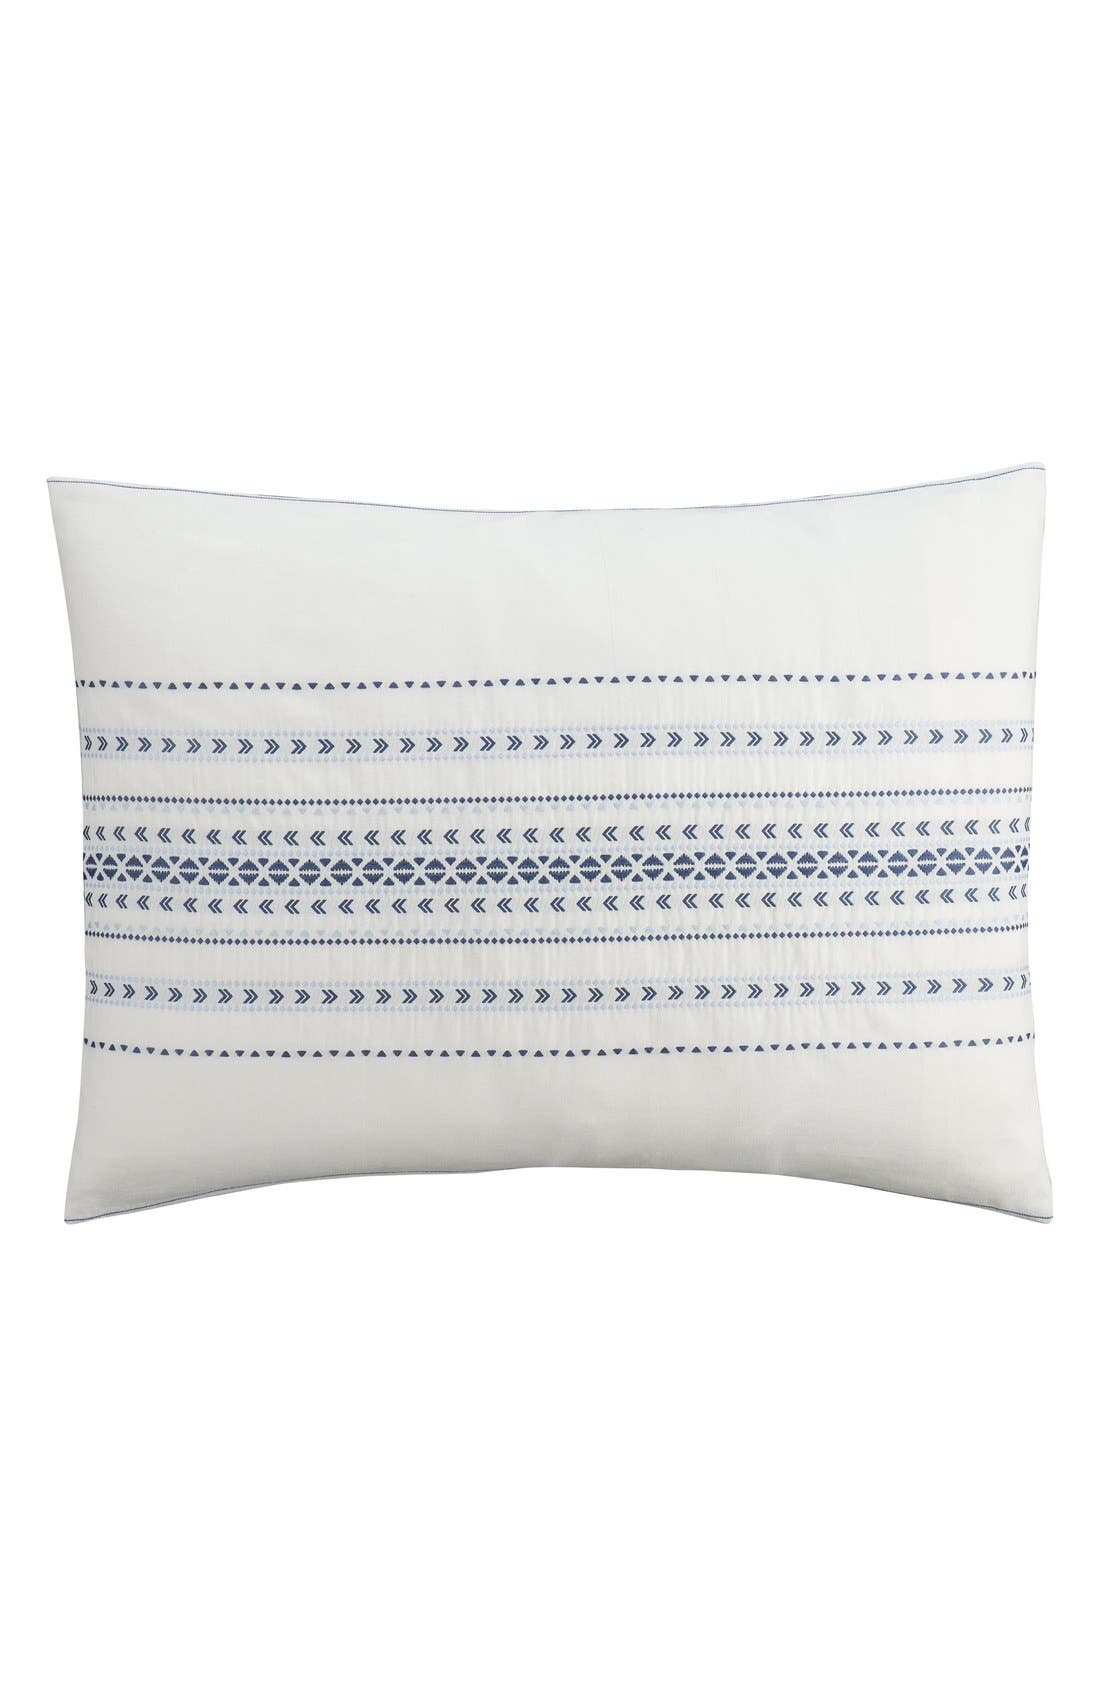 'Indigo Stripe' Sham,                         Main,                         color, 100